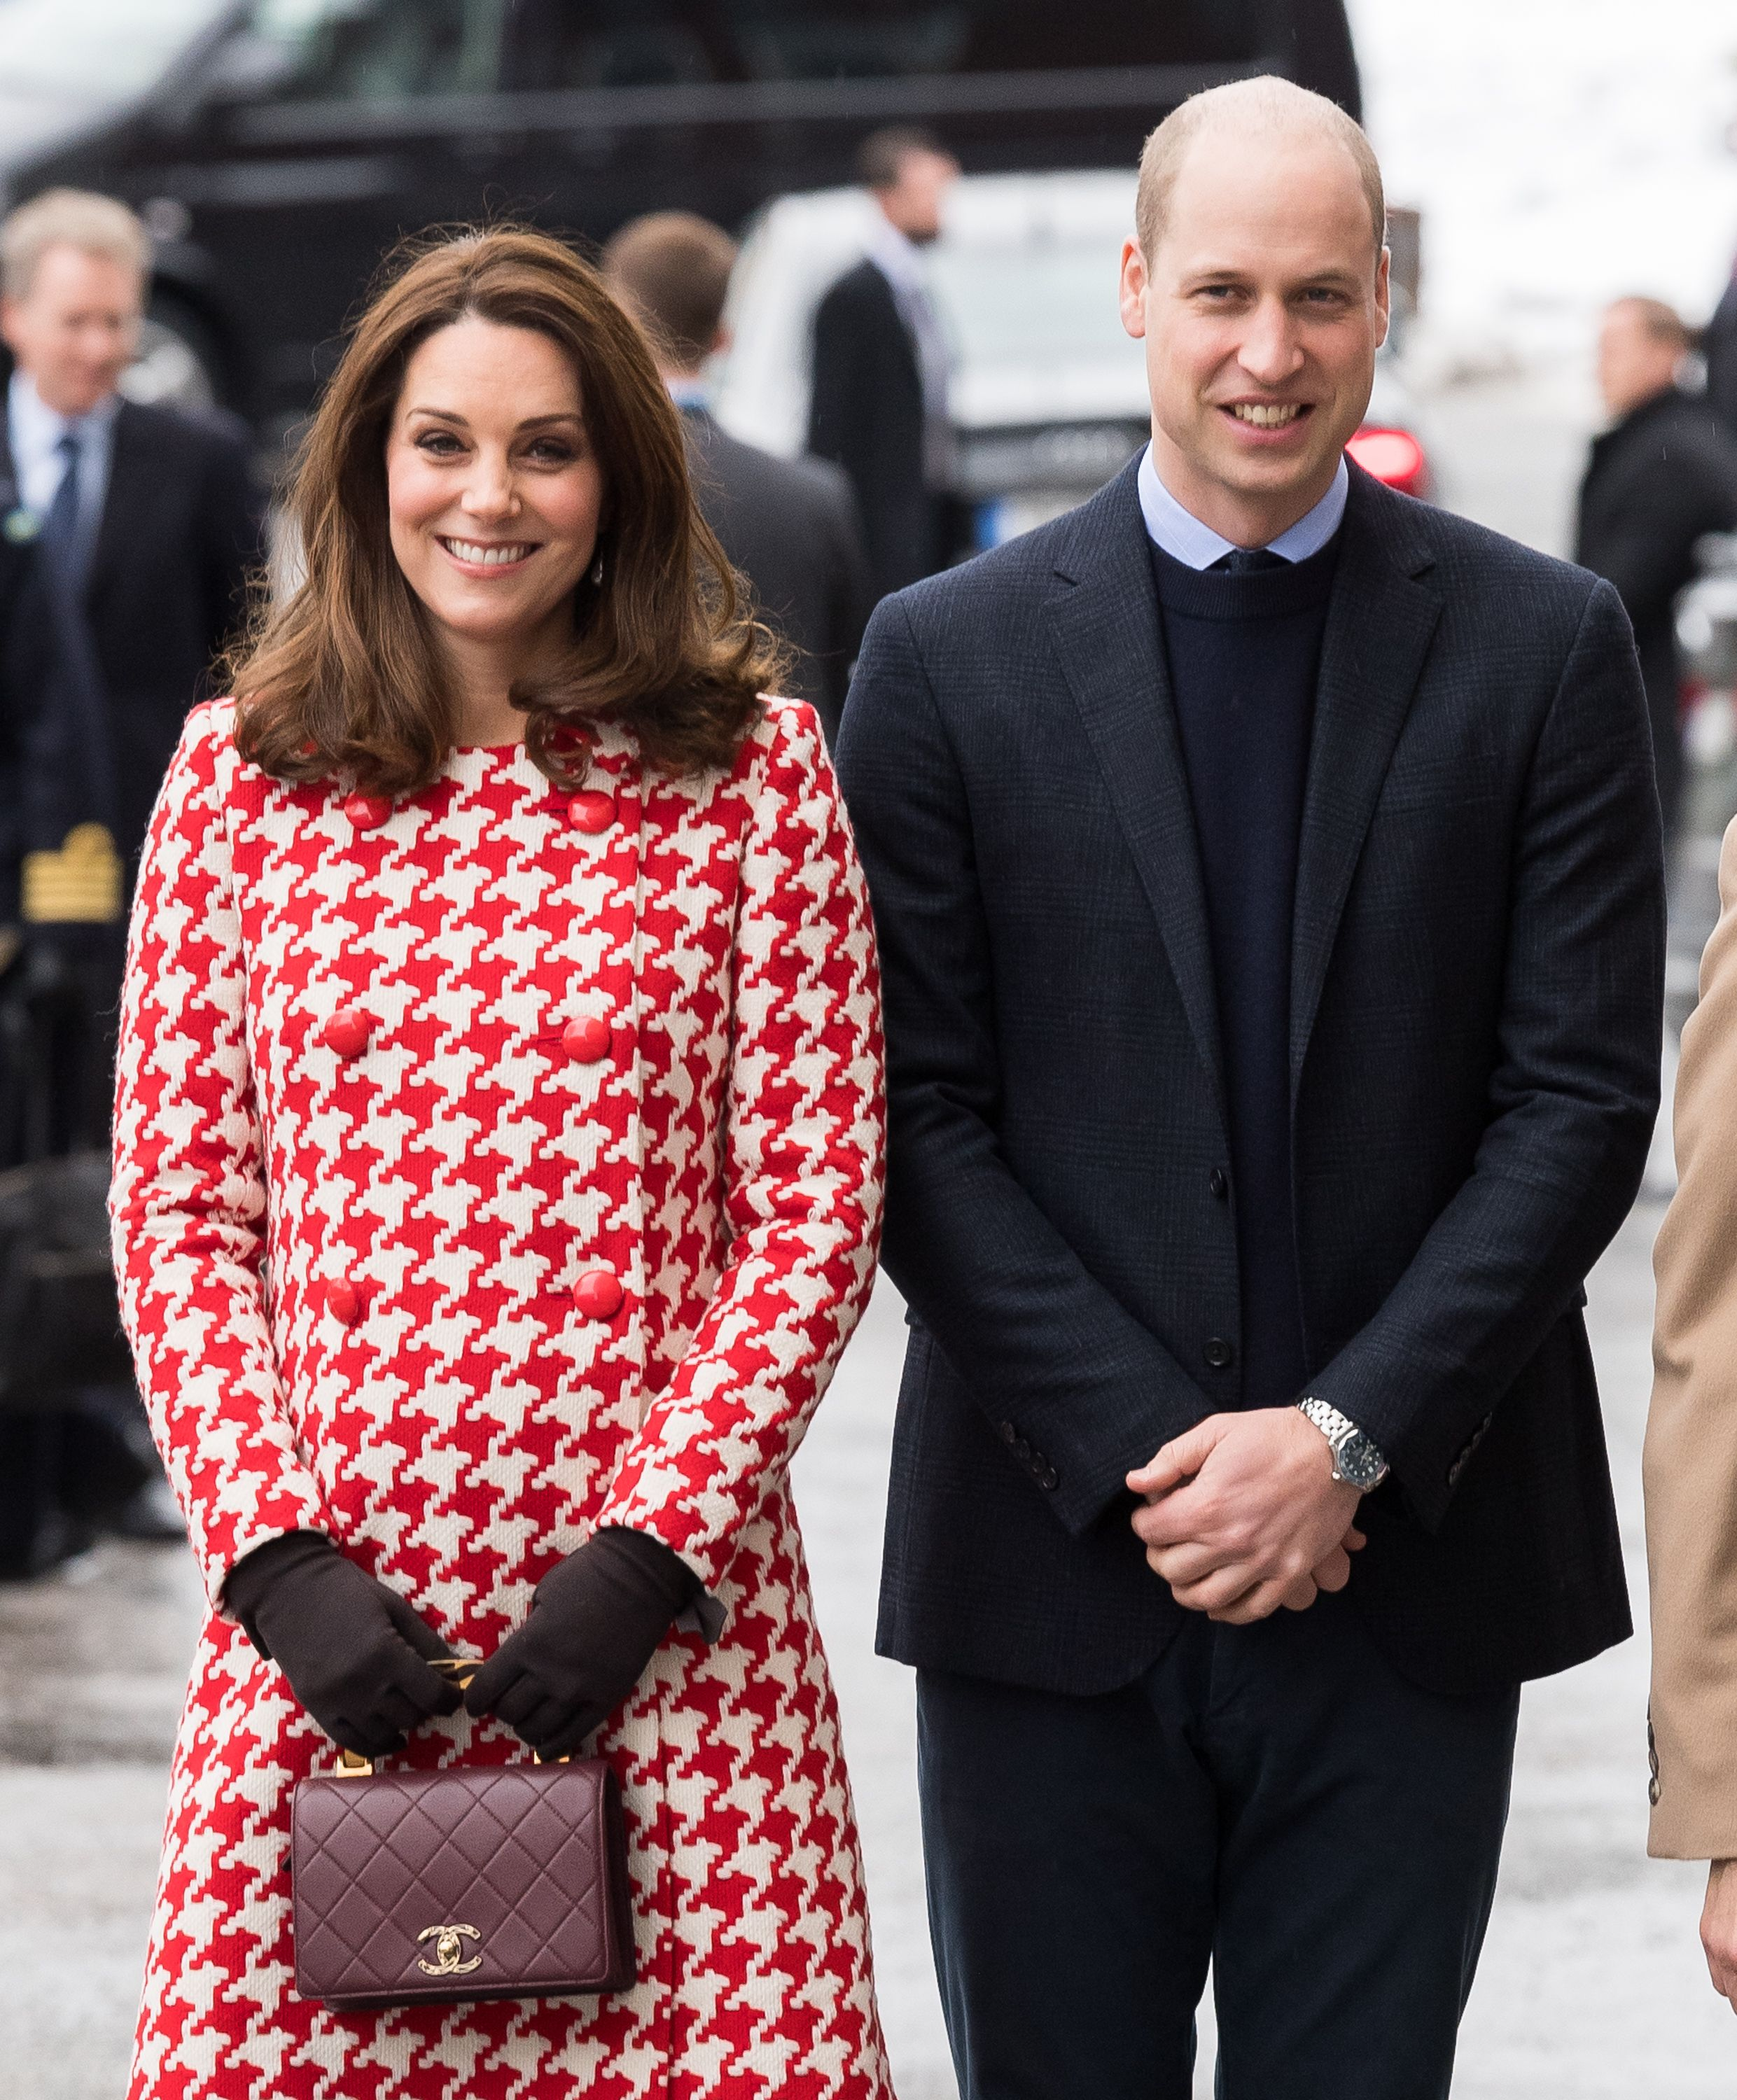 A Timeline of Those Kate Middleton, Rose Hanbury, and Prince William Affair Rumors